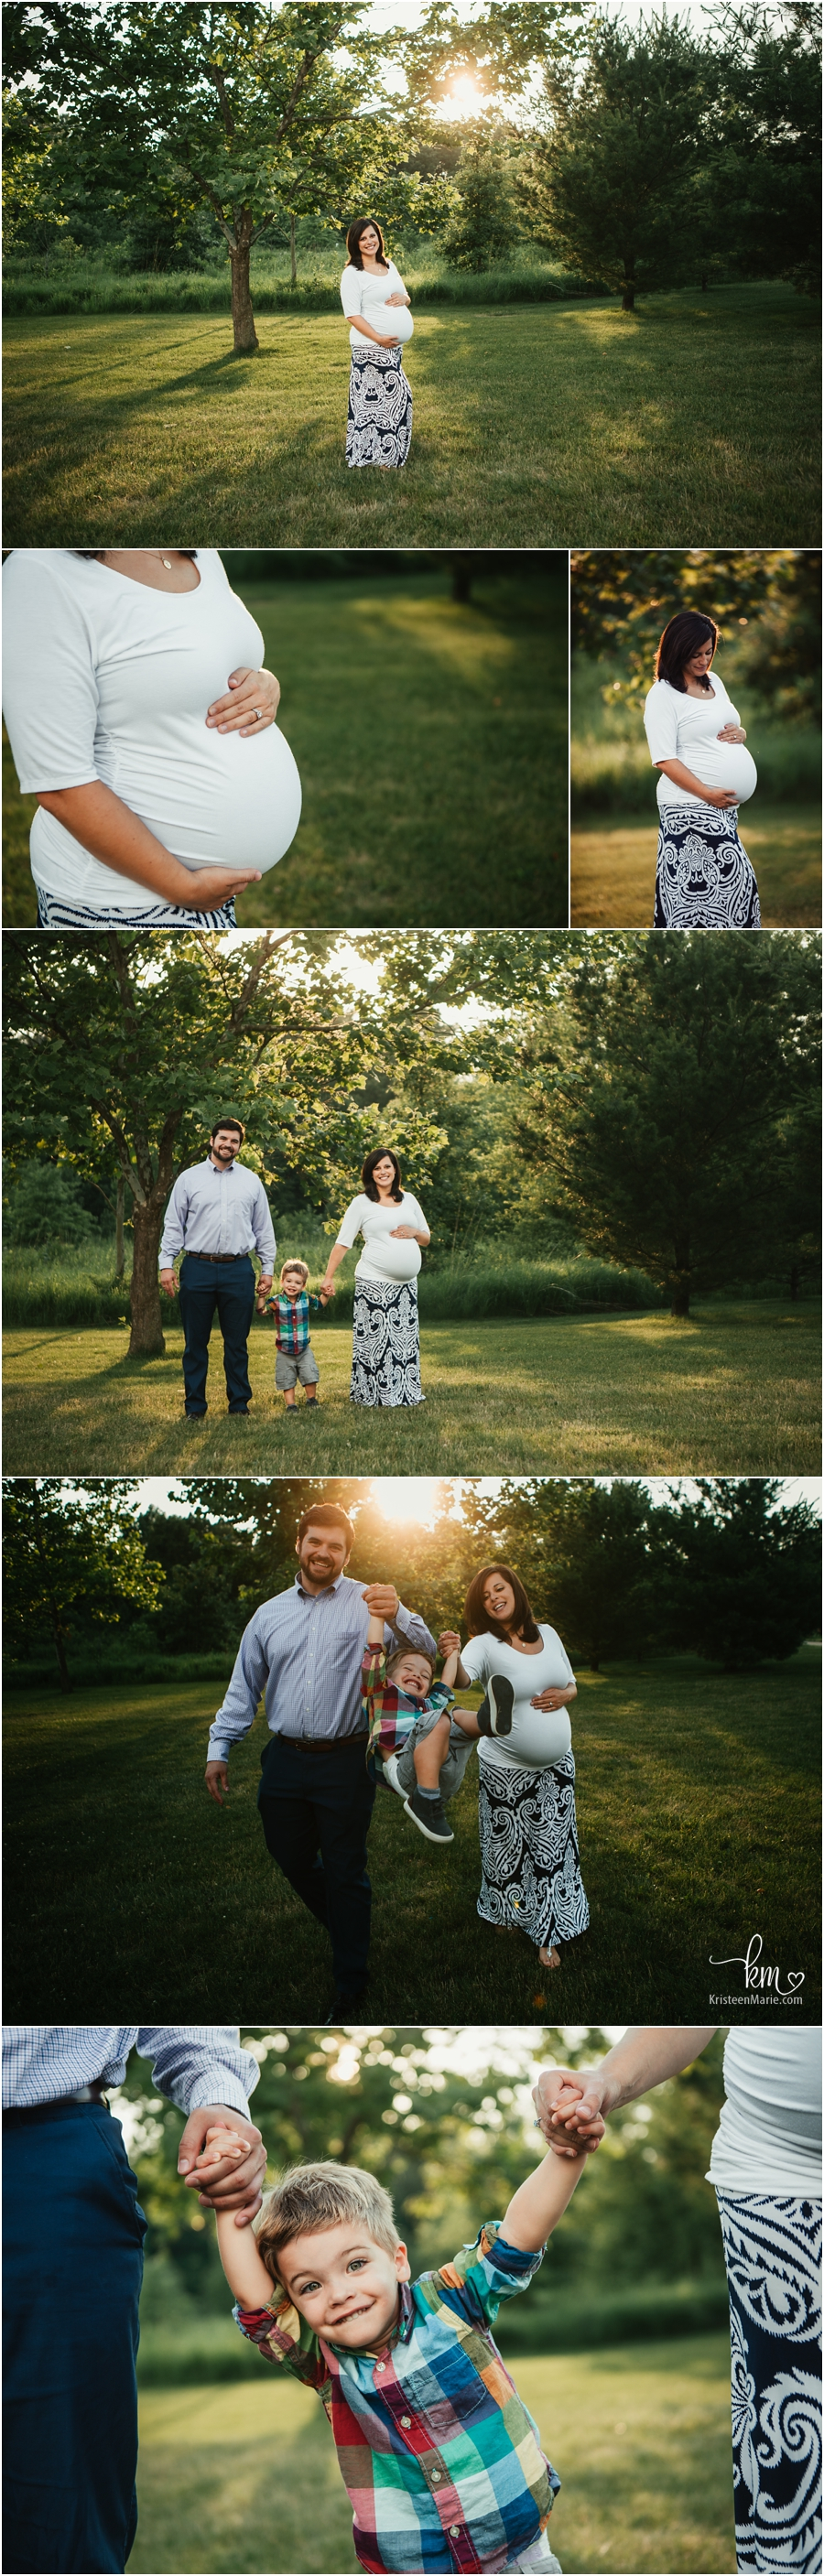 Maternity photography in Indianapolis, IN - the whole family